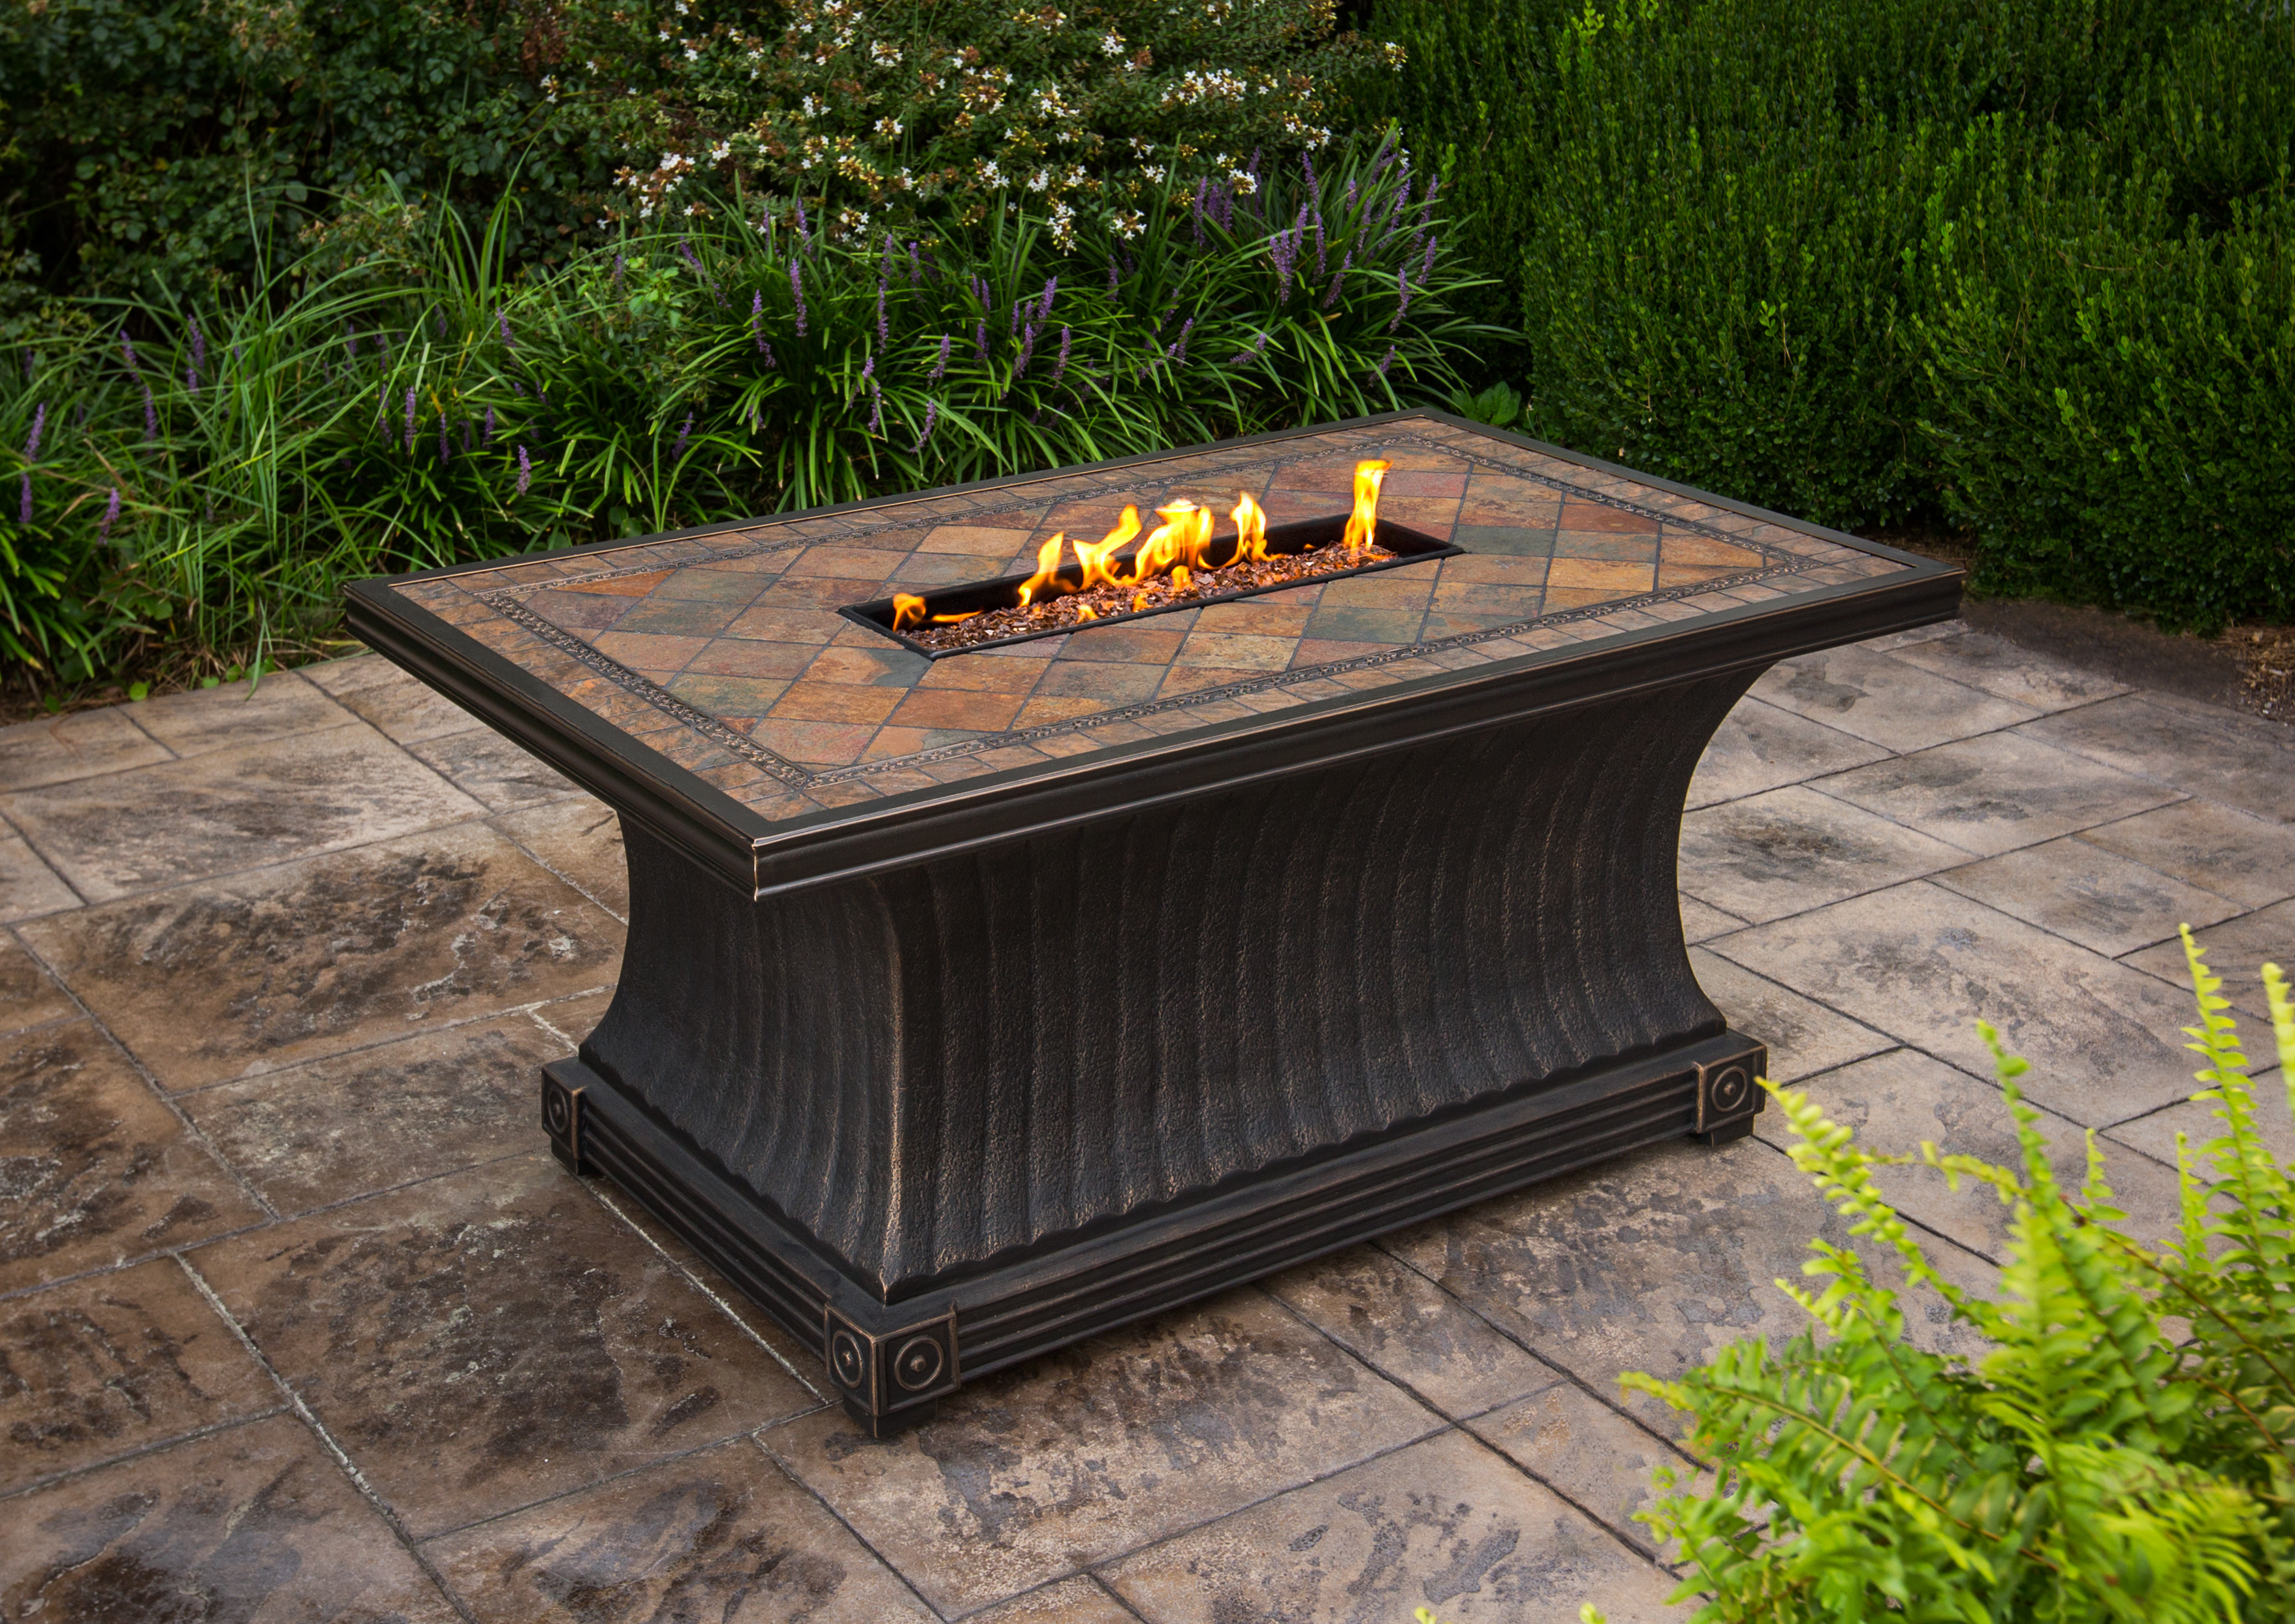 Fireplace Tables Outdoor Fire Tables And Fire Pits Outdoor Kitchen Factory